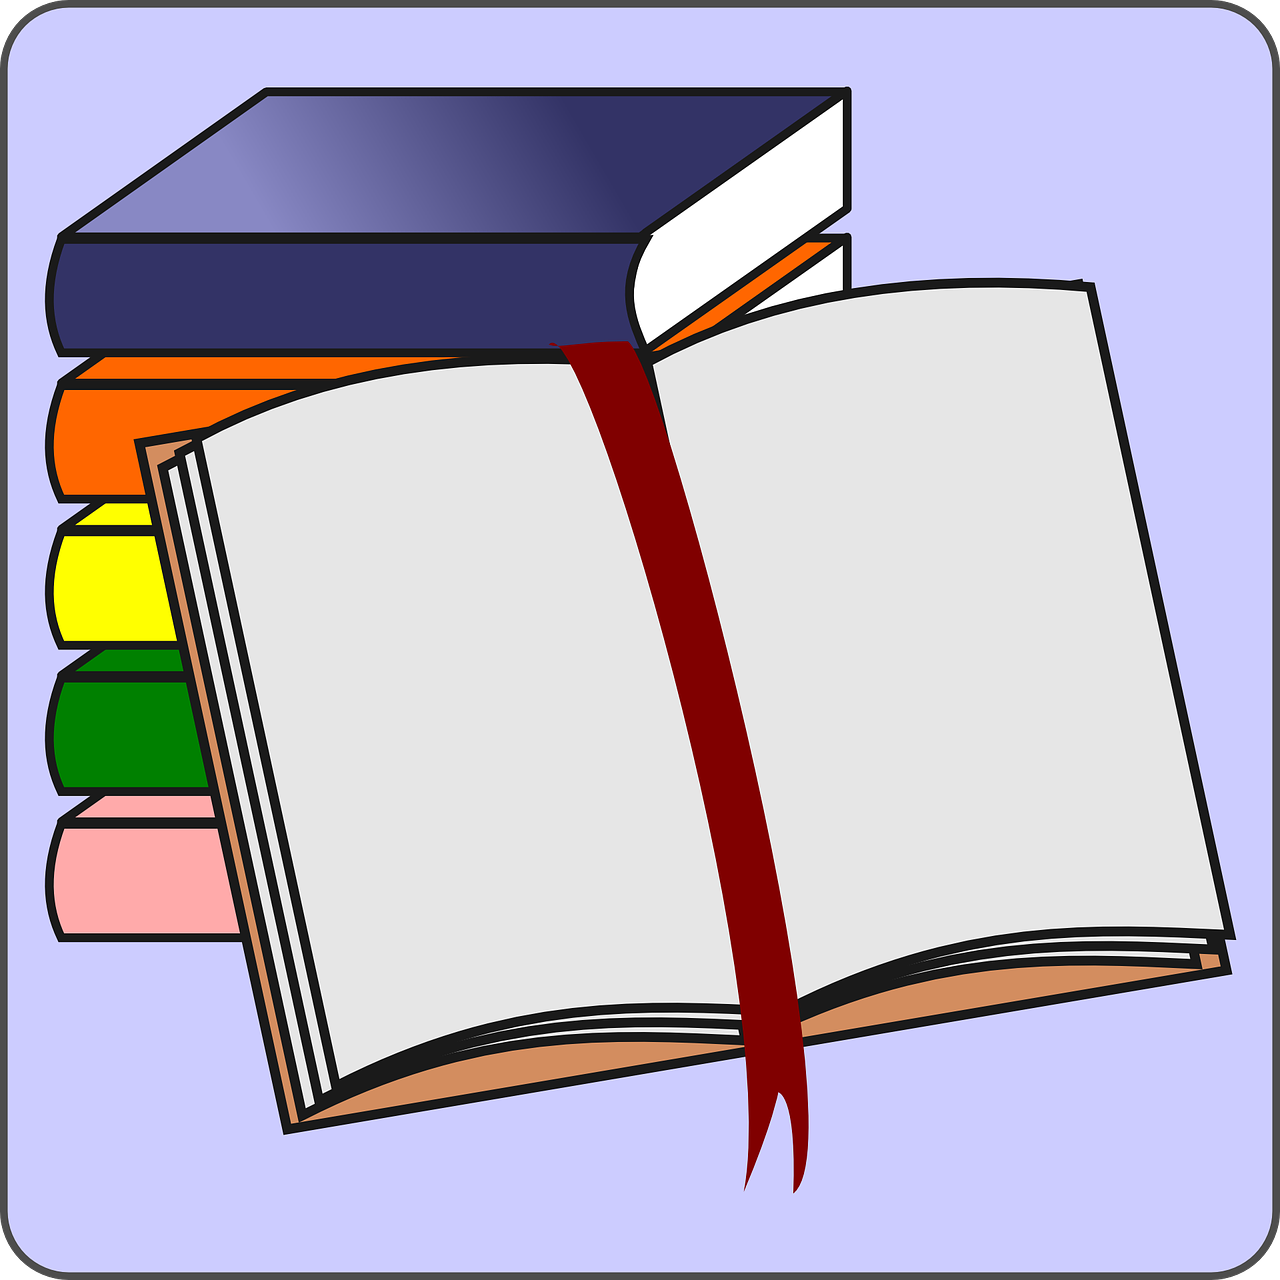 books,open book,bookmarker,pages,bookmark,stack of books,pile of books,school books,library books,free vector graphics,free pictures, free photos, free images, royalty free, free illustrations, public domain